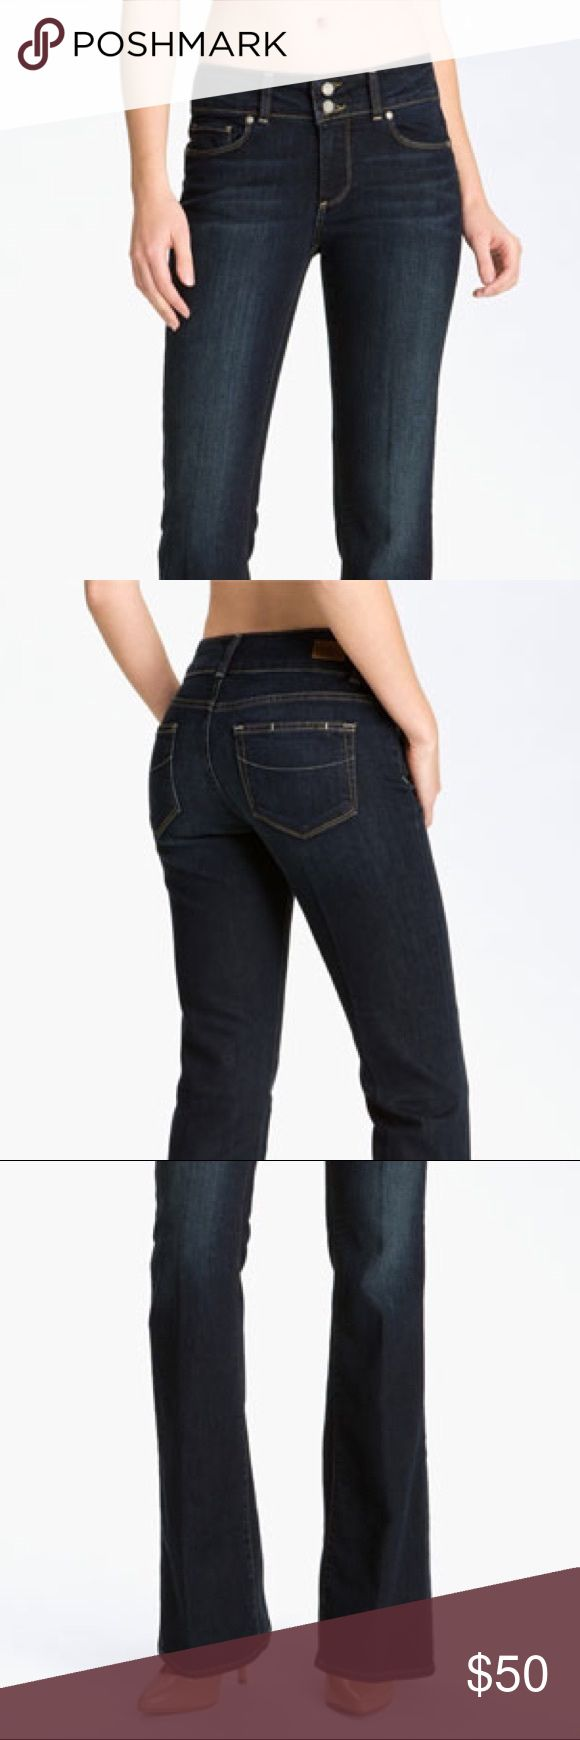 """Paige Premium Denim Hidden Hills Boot Cut NWOT New without tags Paige Hidden Hills jeans.  These have a little stretch for a very nice fit.  28"""" inseam, 9"""" rise Paige Jeans Jeans Boot Cut"""